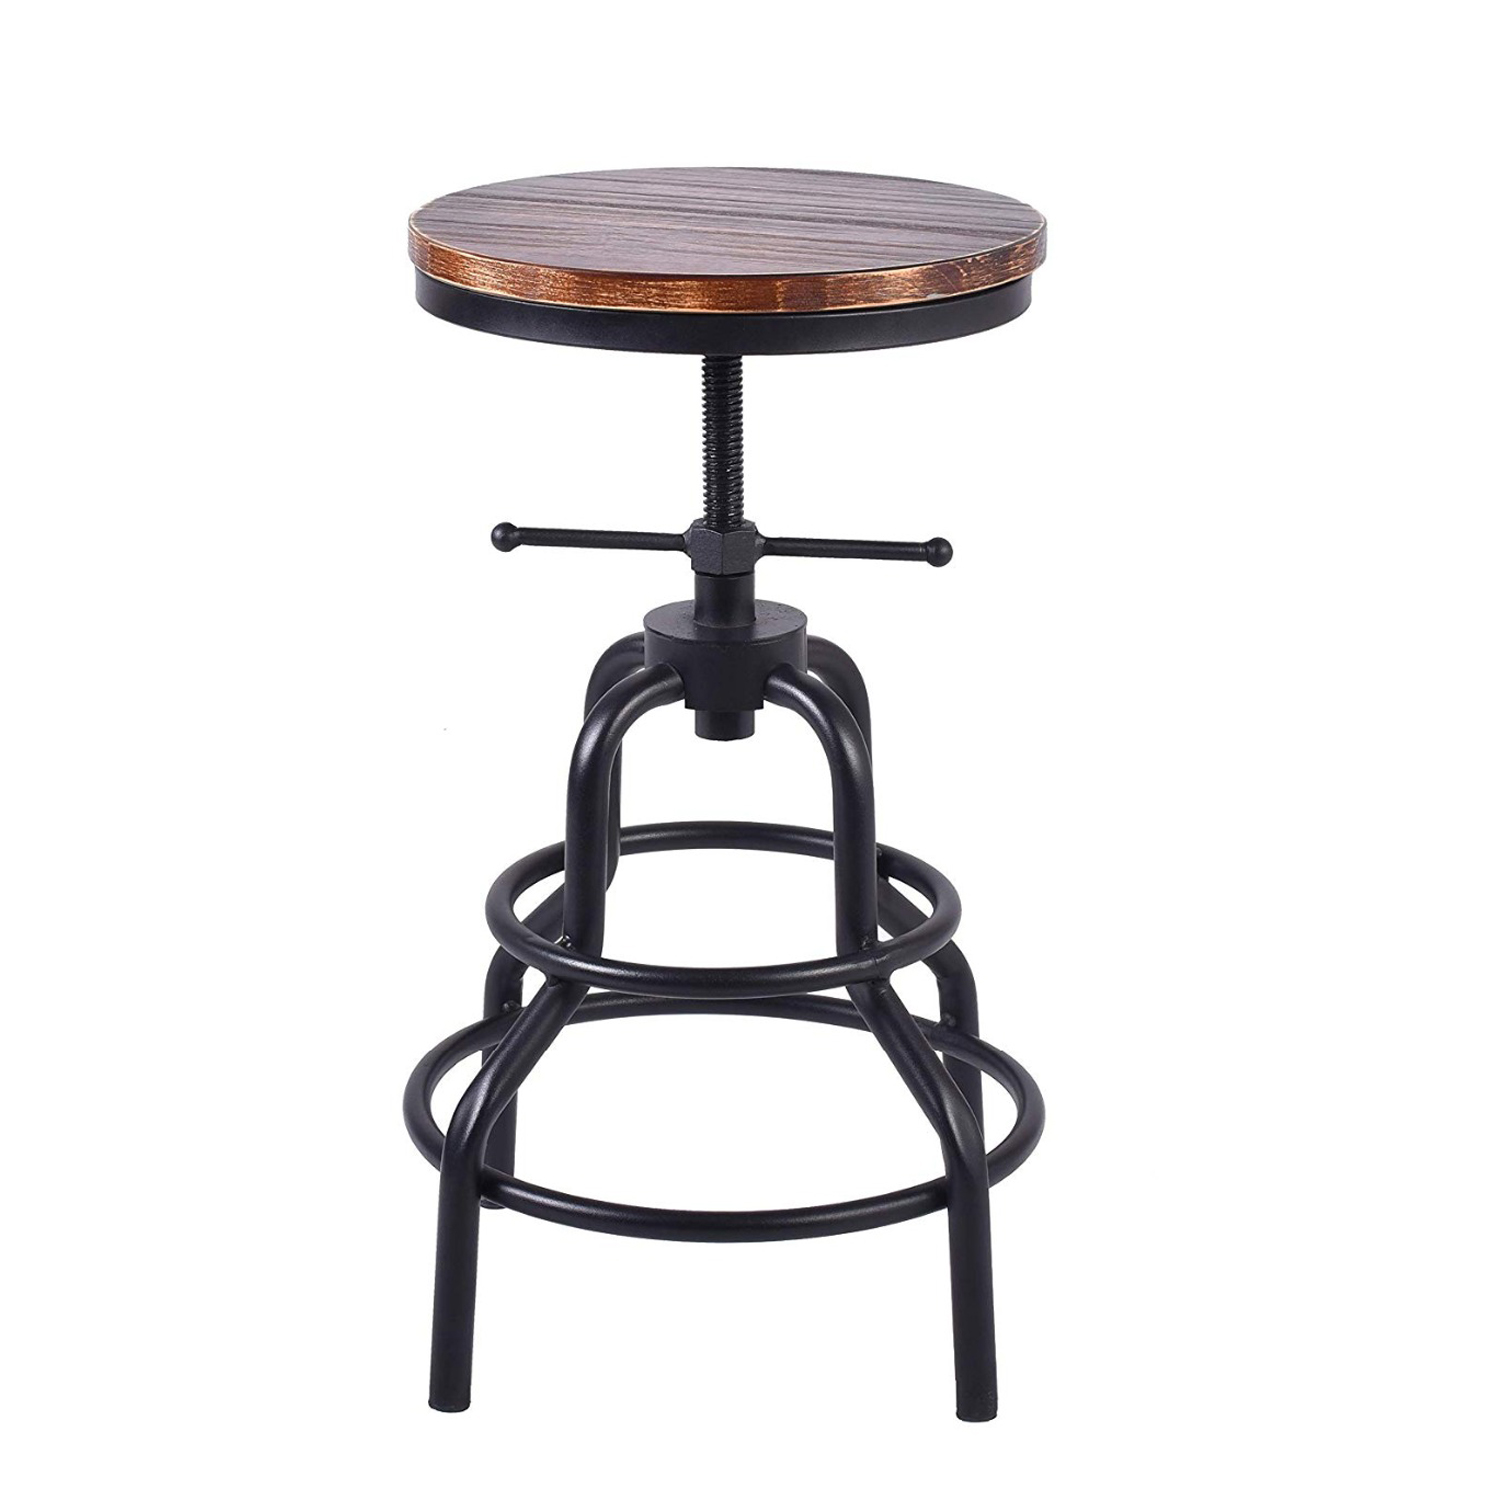 Topower Industrial Retro Pinewood Metal Bar Stool Adjustable Counter Height Swivel Pub Kitchen Round Wood Iron Bar Stools